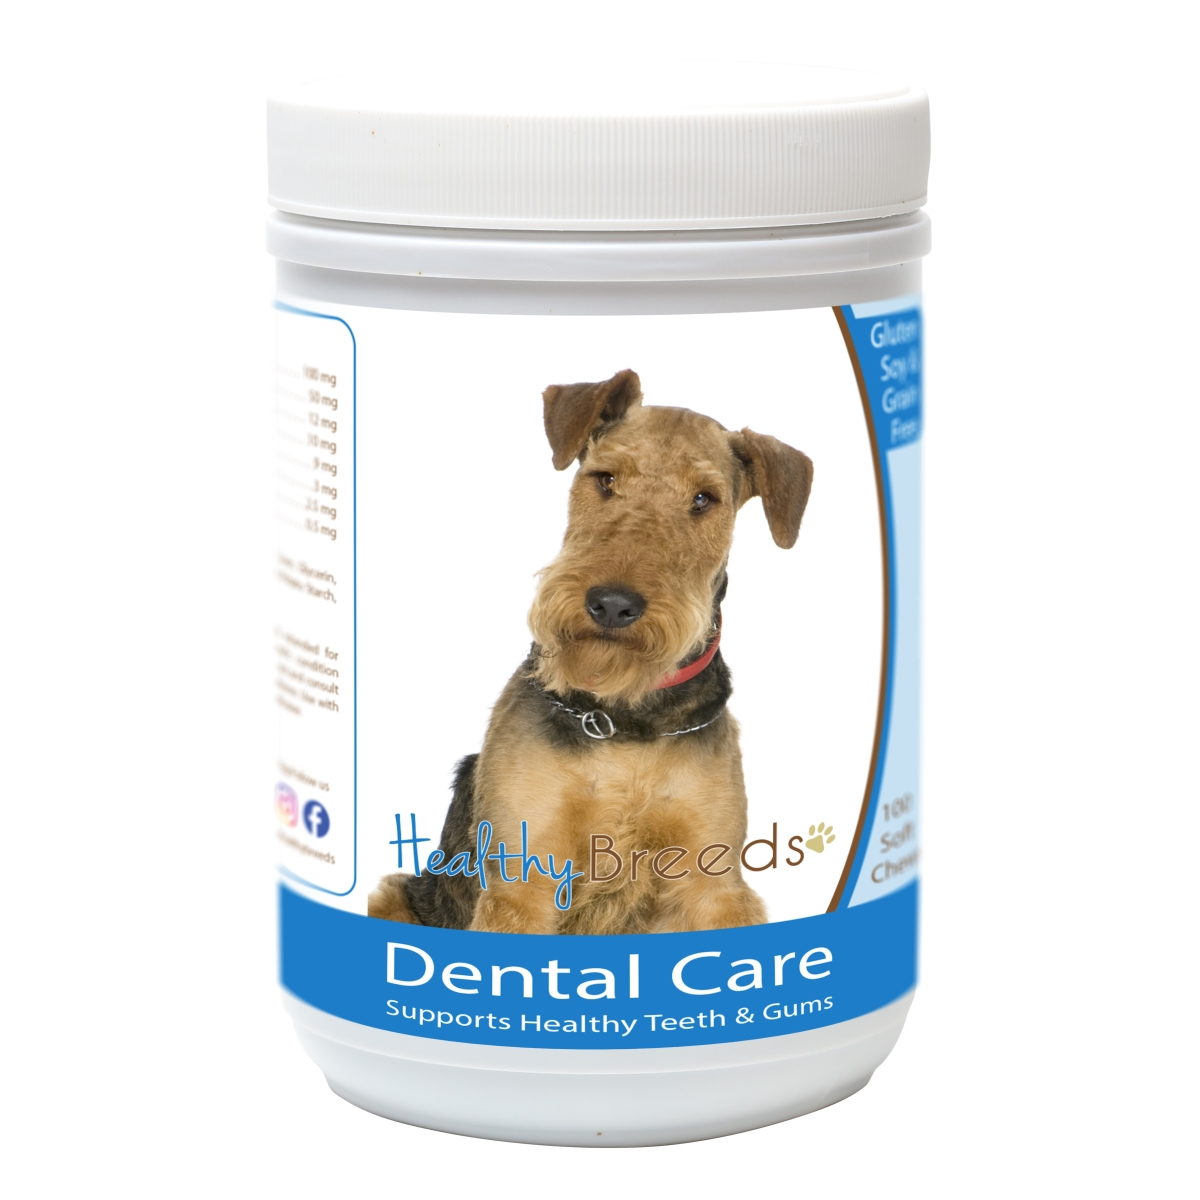 Healthy Breeds 840235163107 Airedale Terrier Breath Care Soft Chews for Dogs - 60 Count